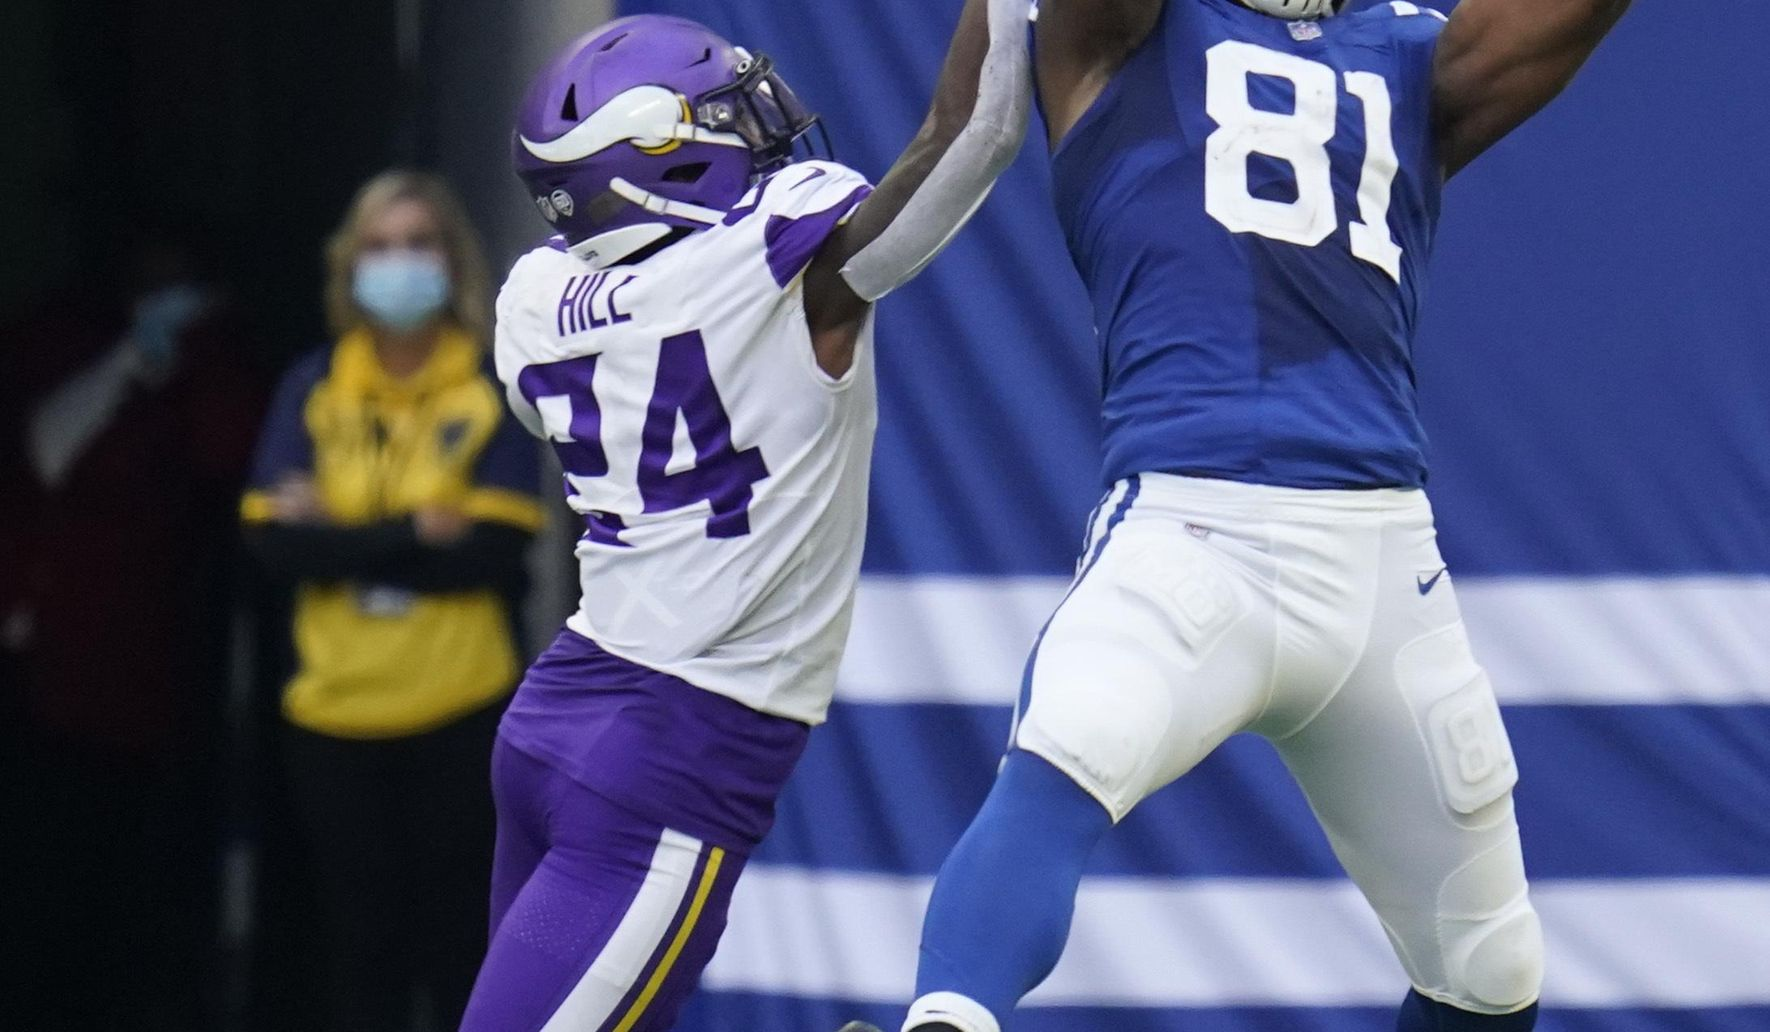 Vikings_colts_football_31715_c0-1005-2185-2278_s1770x1032